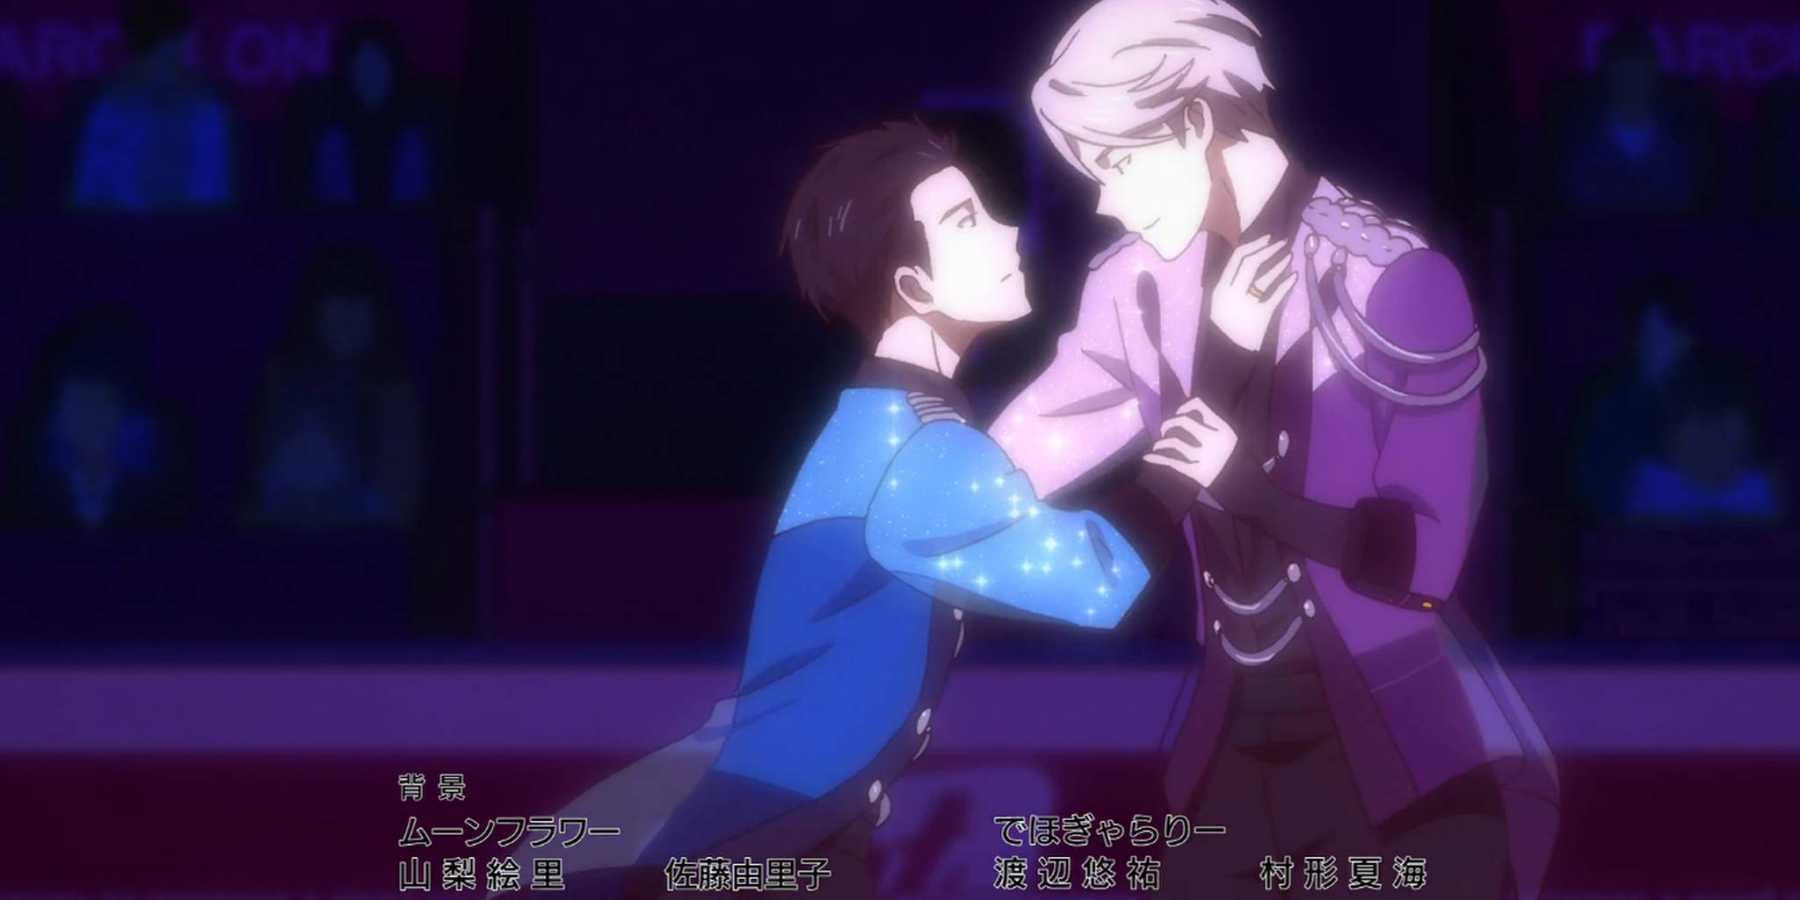 Yuri On Ice Skates Again, Season 2 Teased | yuri